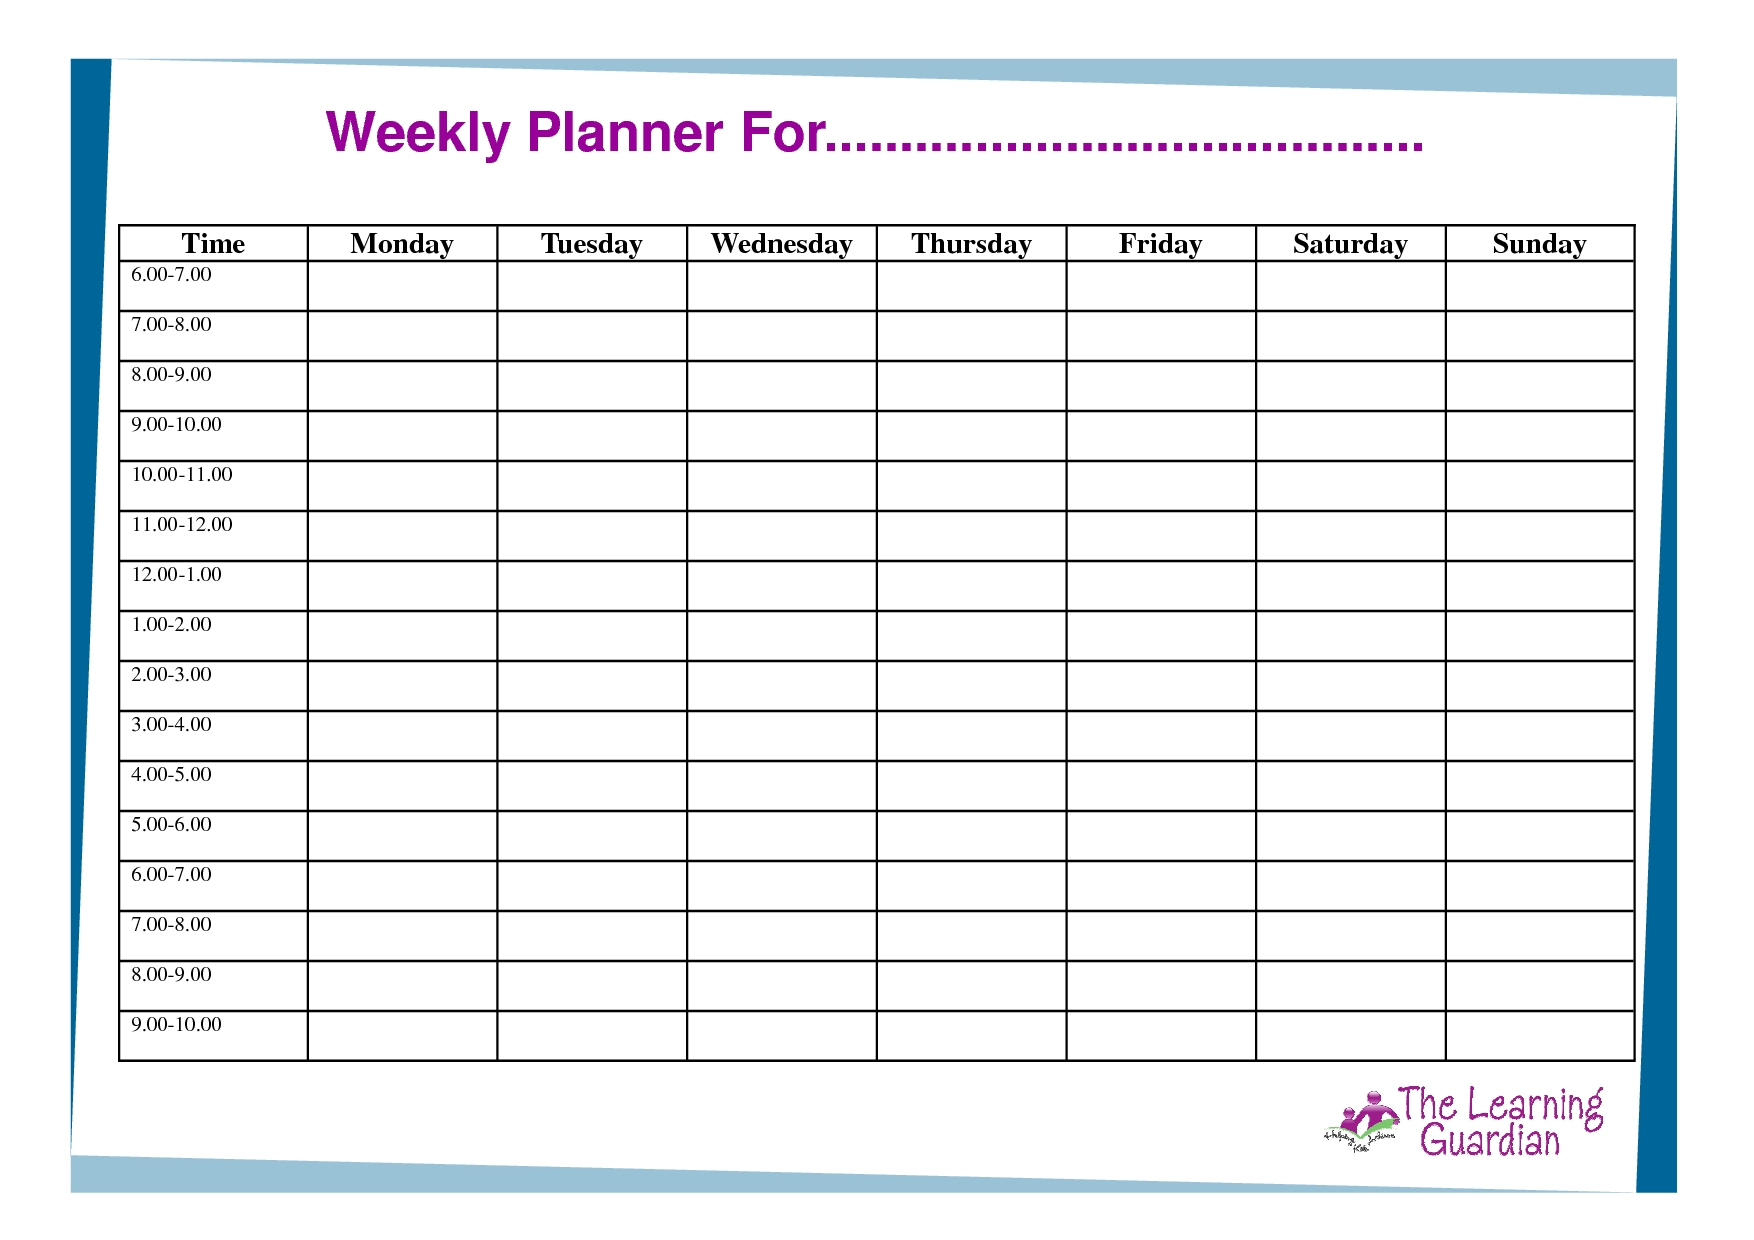 Printable Weekly Planner With Time Slots - Calendar Weekly Printable Calendar With Time Slots Free